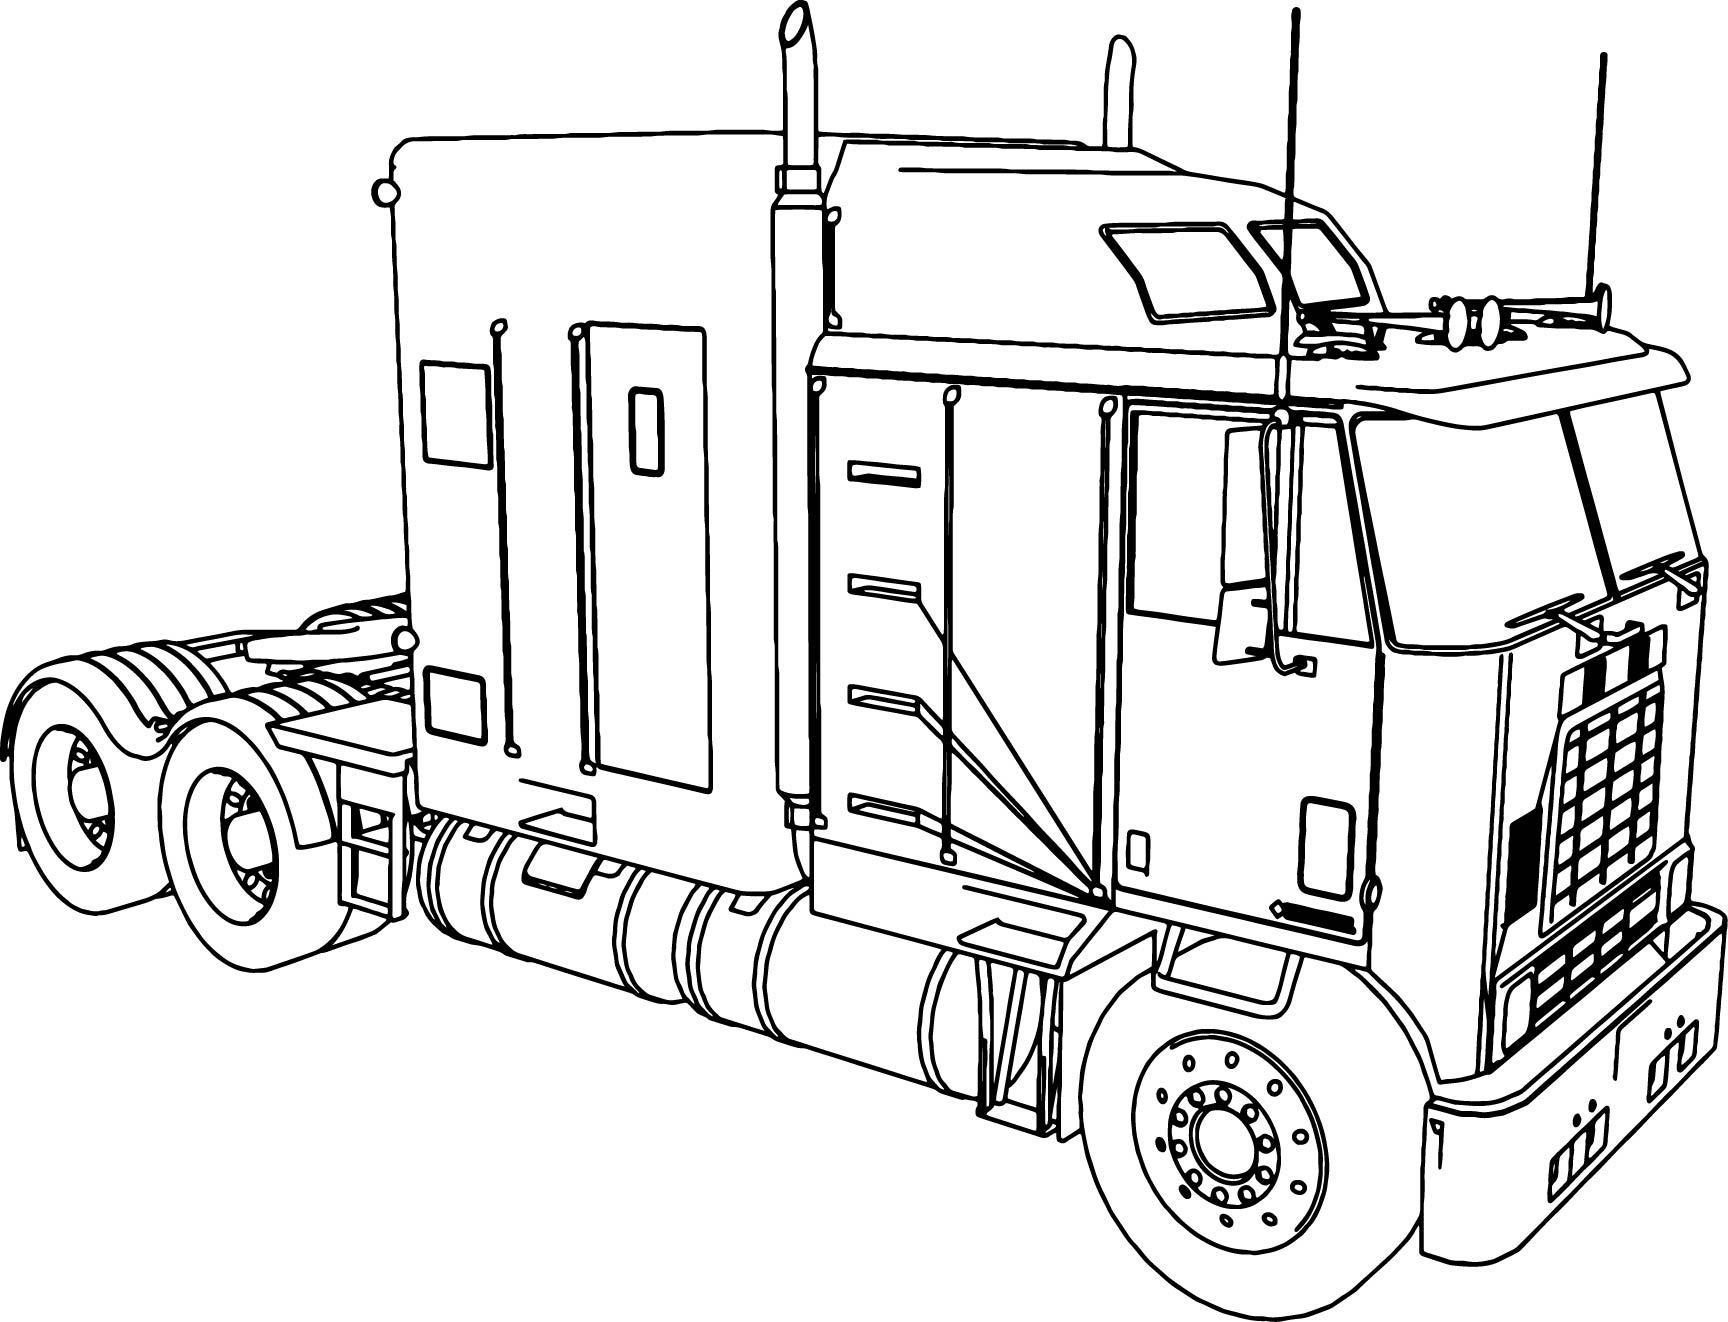 Coloring Pages Of Cars And Trucks Frais Best International Long Trailer Truck Coloring Truck Coloring Pages Monster Truck Coloring Pages Tractor Coloring Pages